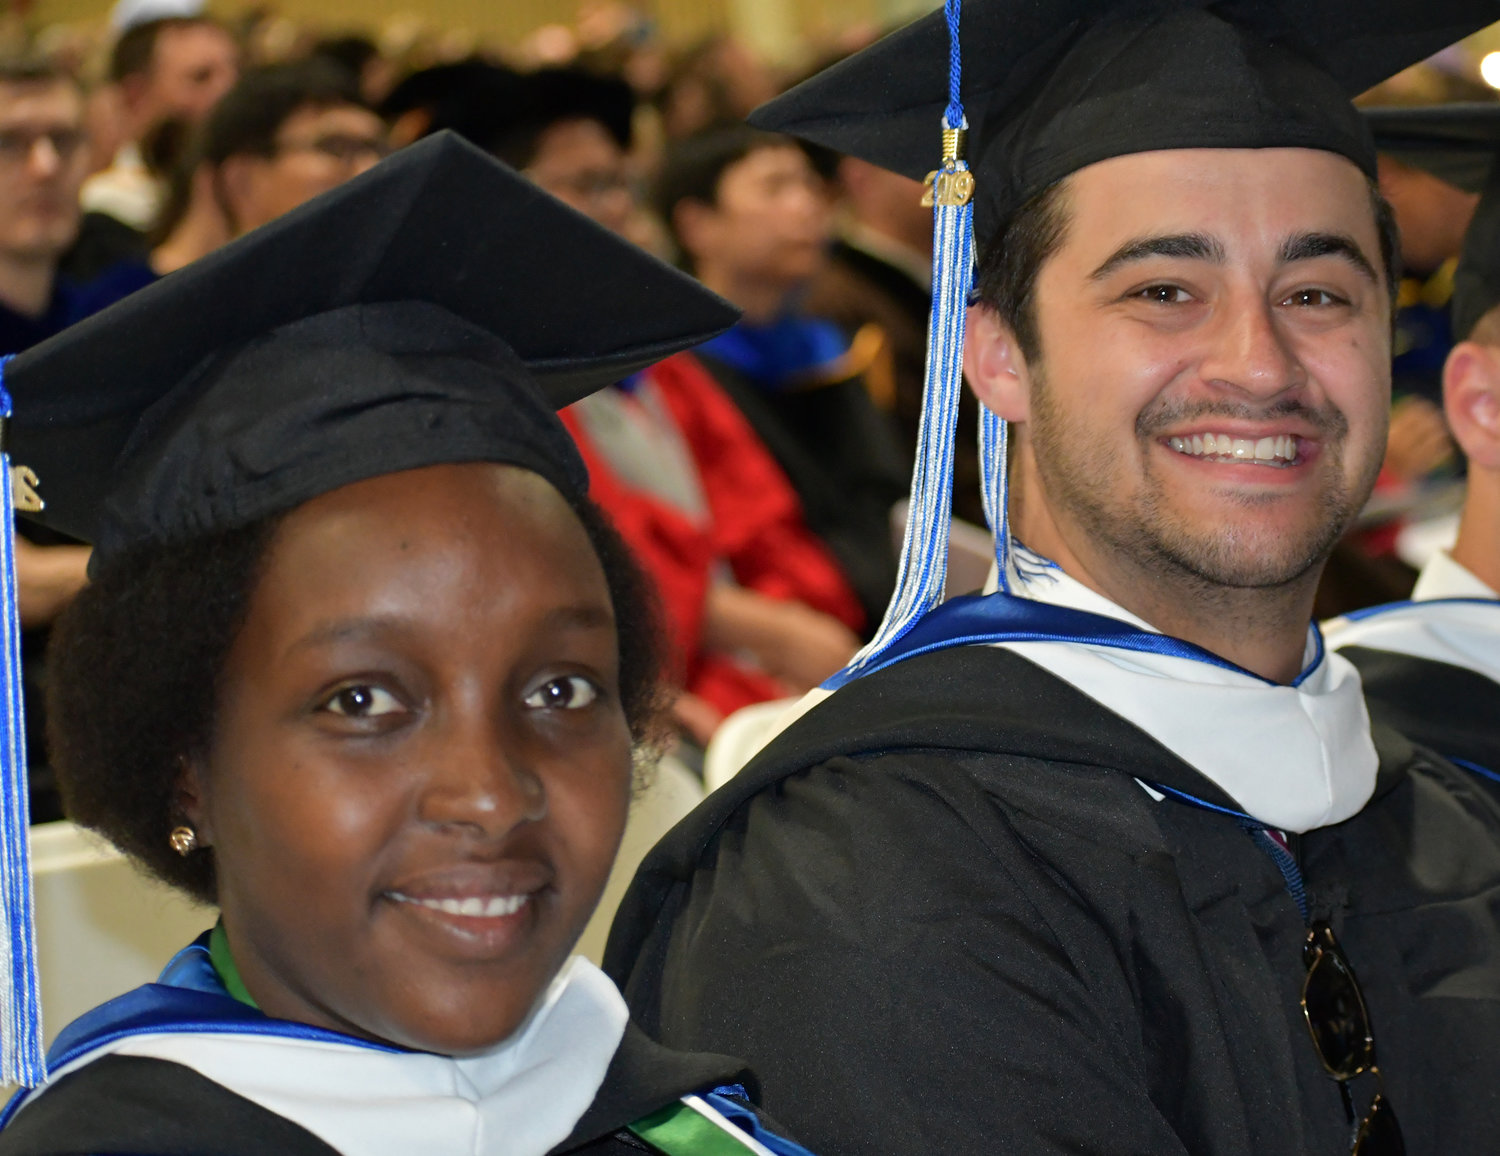 PROUD DAY — Hamilton College Class of 2019 graduates Risper Kirvi of Kenya, East Africa and Jonathan Kirshenbaum of Newton, Mass. were all smiles as they prepared to receive their degrees at the Hamilton College commencement ceremony on Sunday, May 26 in the Margaret Bundy Scott Field House.